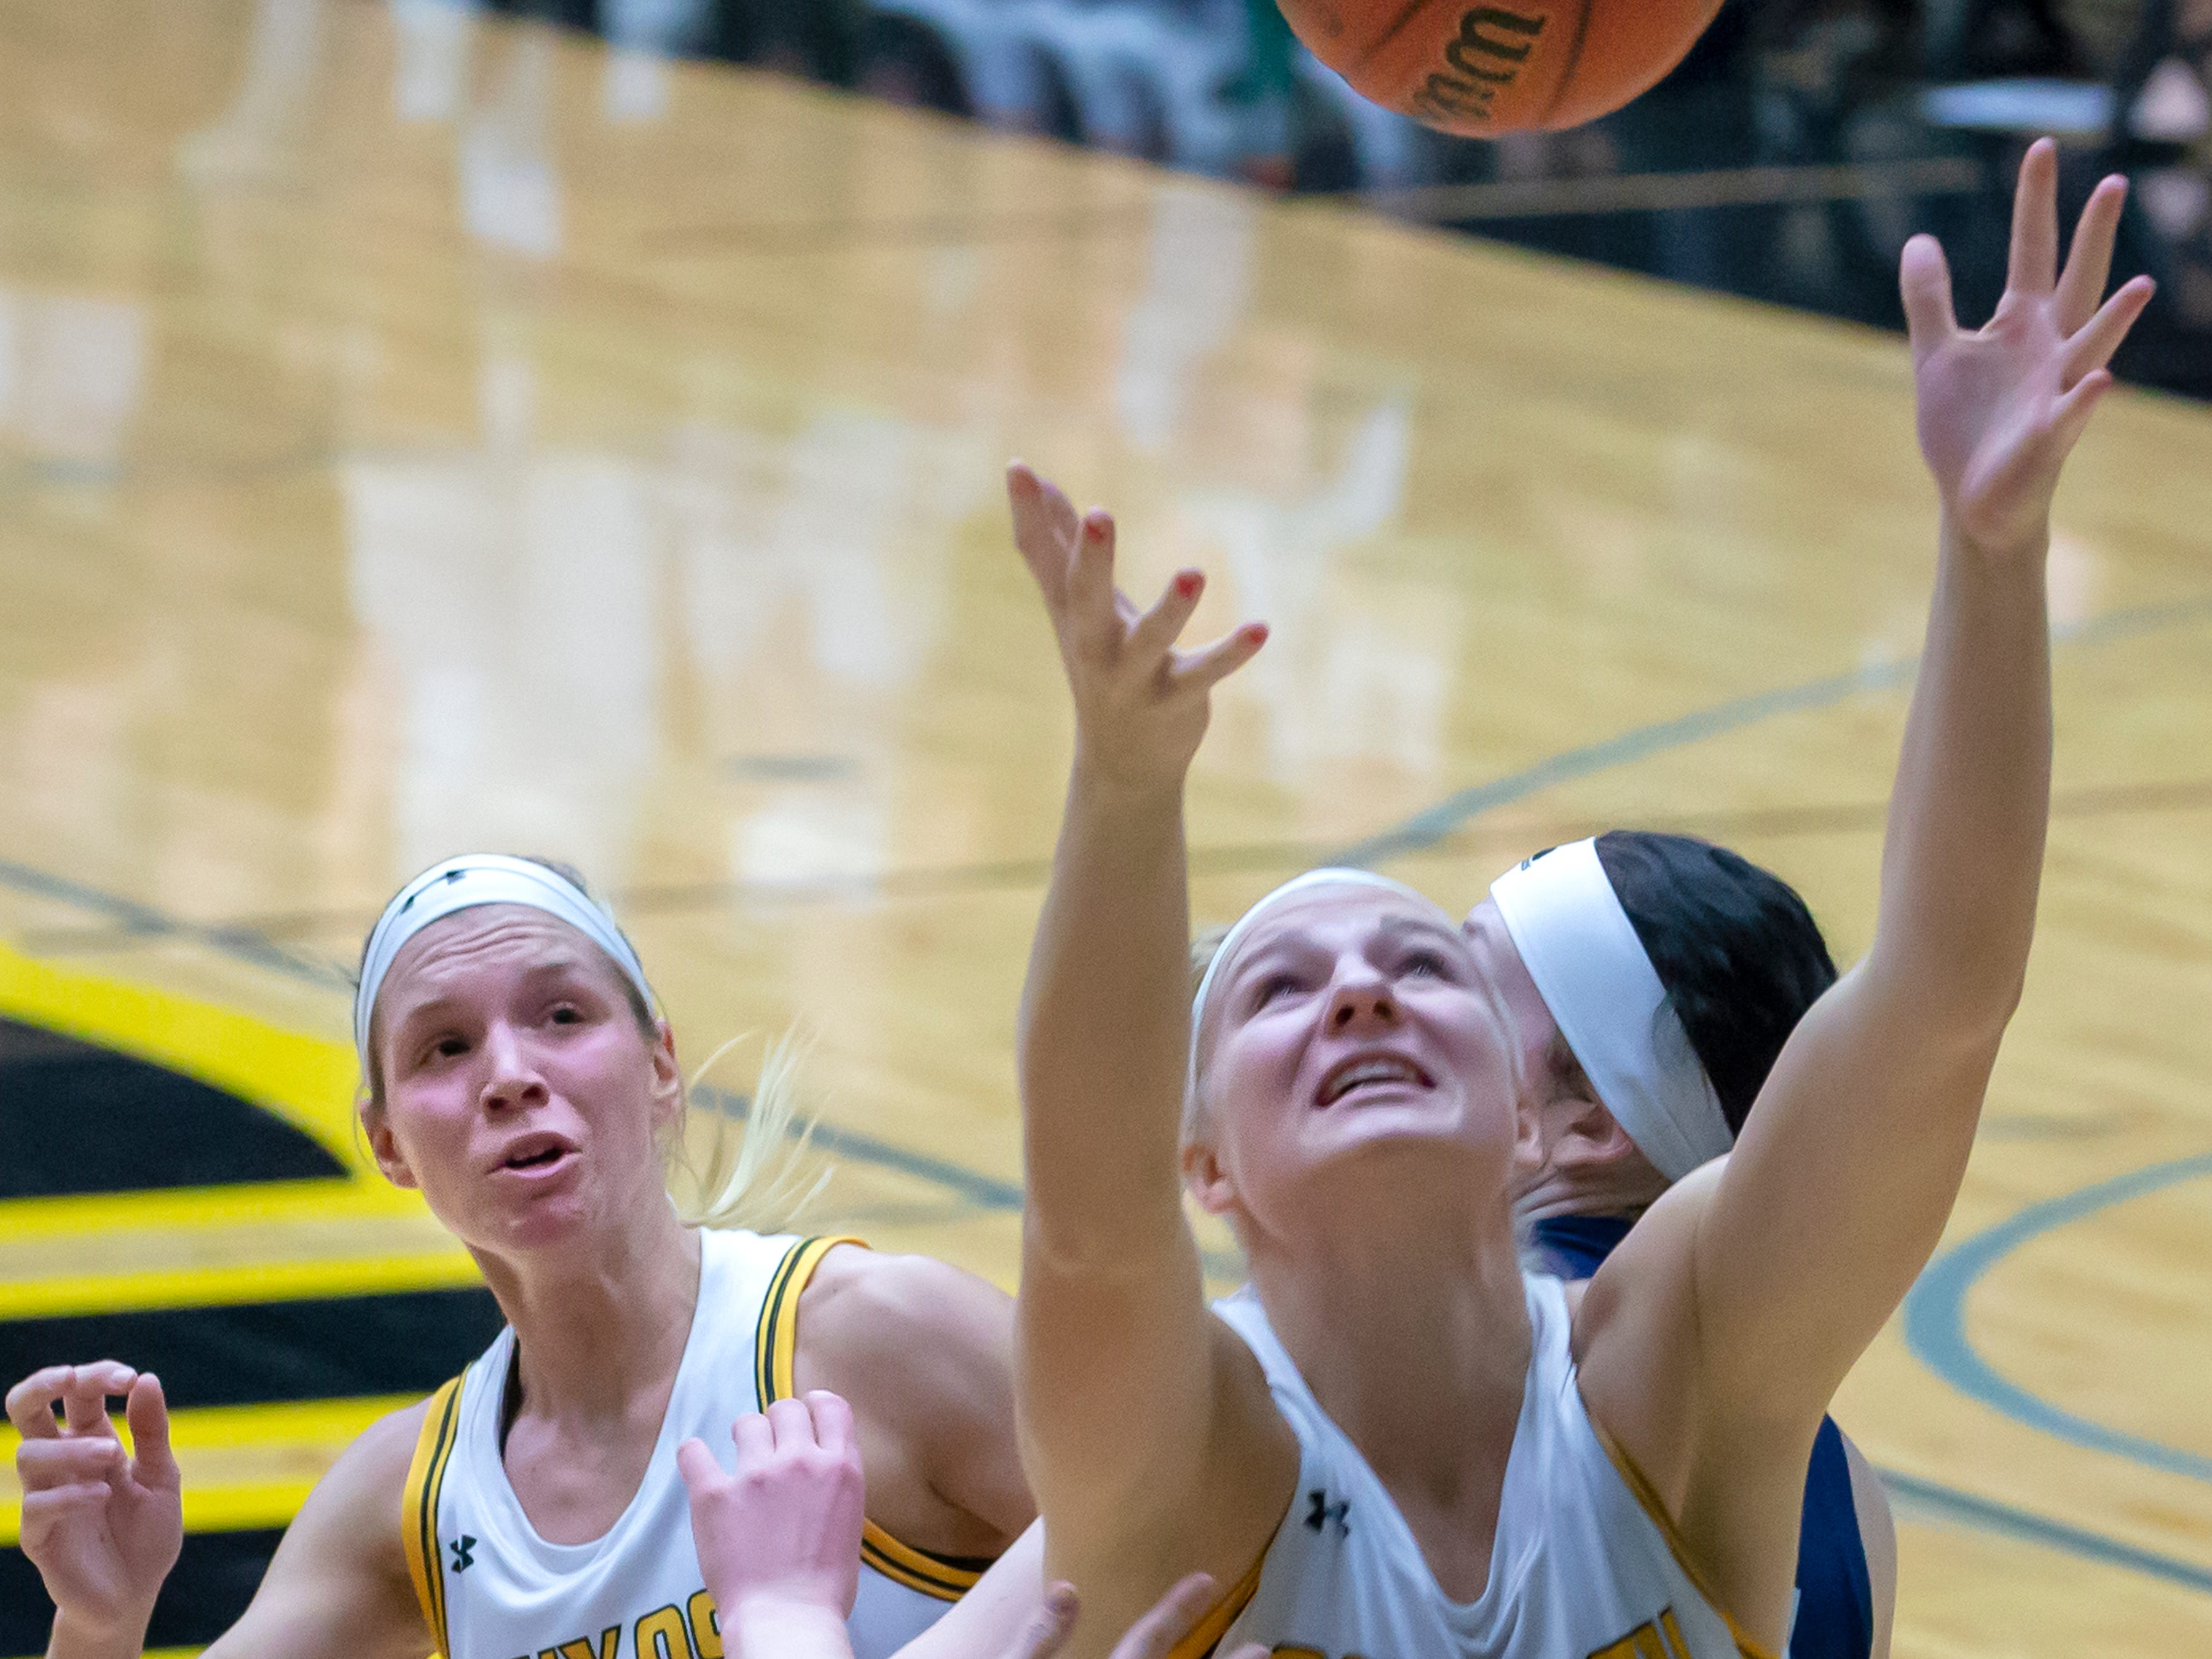 UW-Oshkosh's Erin Vande Zande looks to grab the rebound at the Kolf Sports Center on Saturday, January 5, 2019.